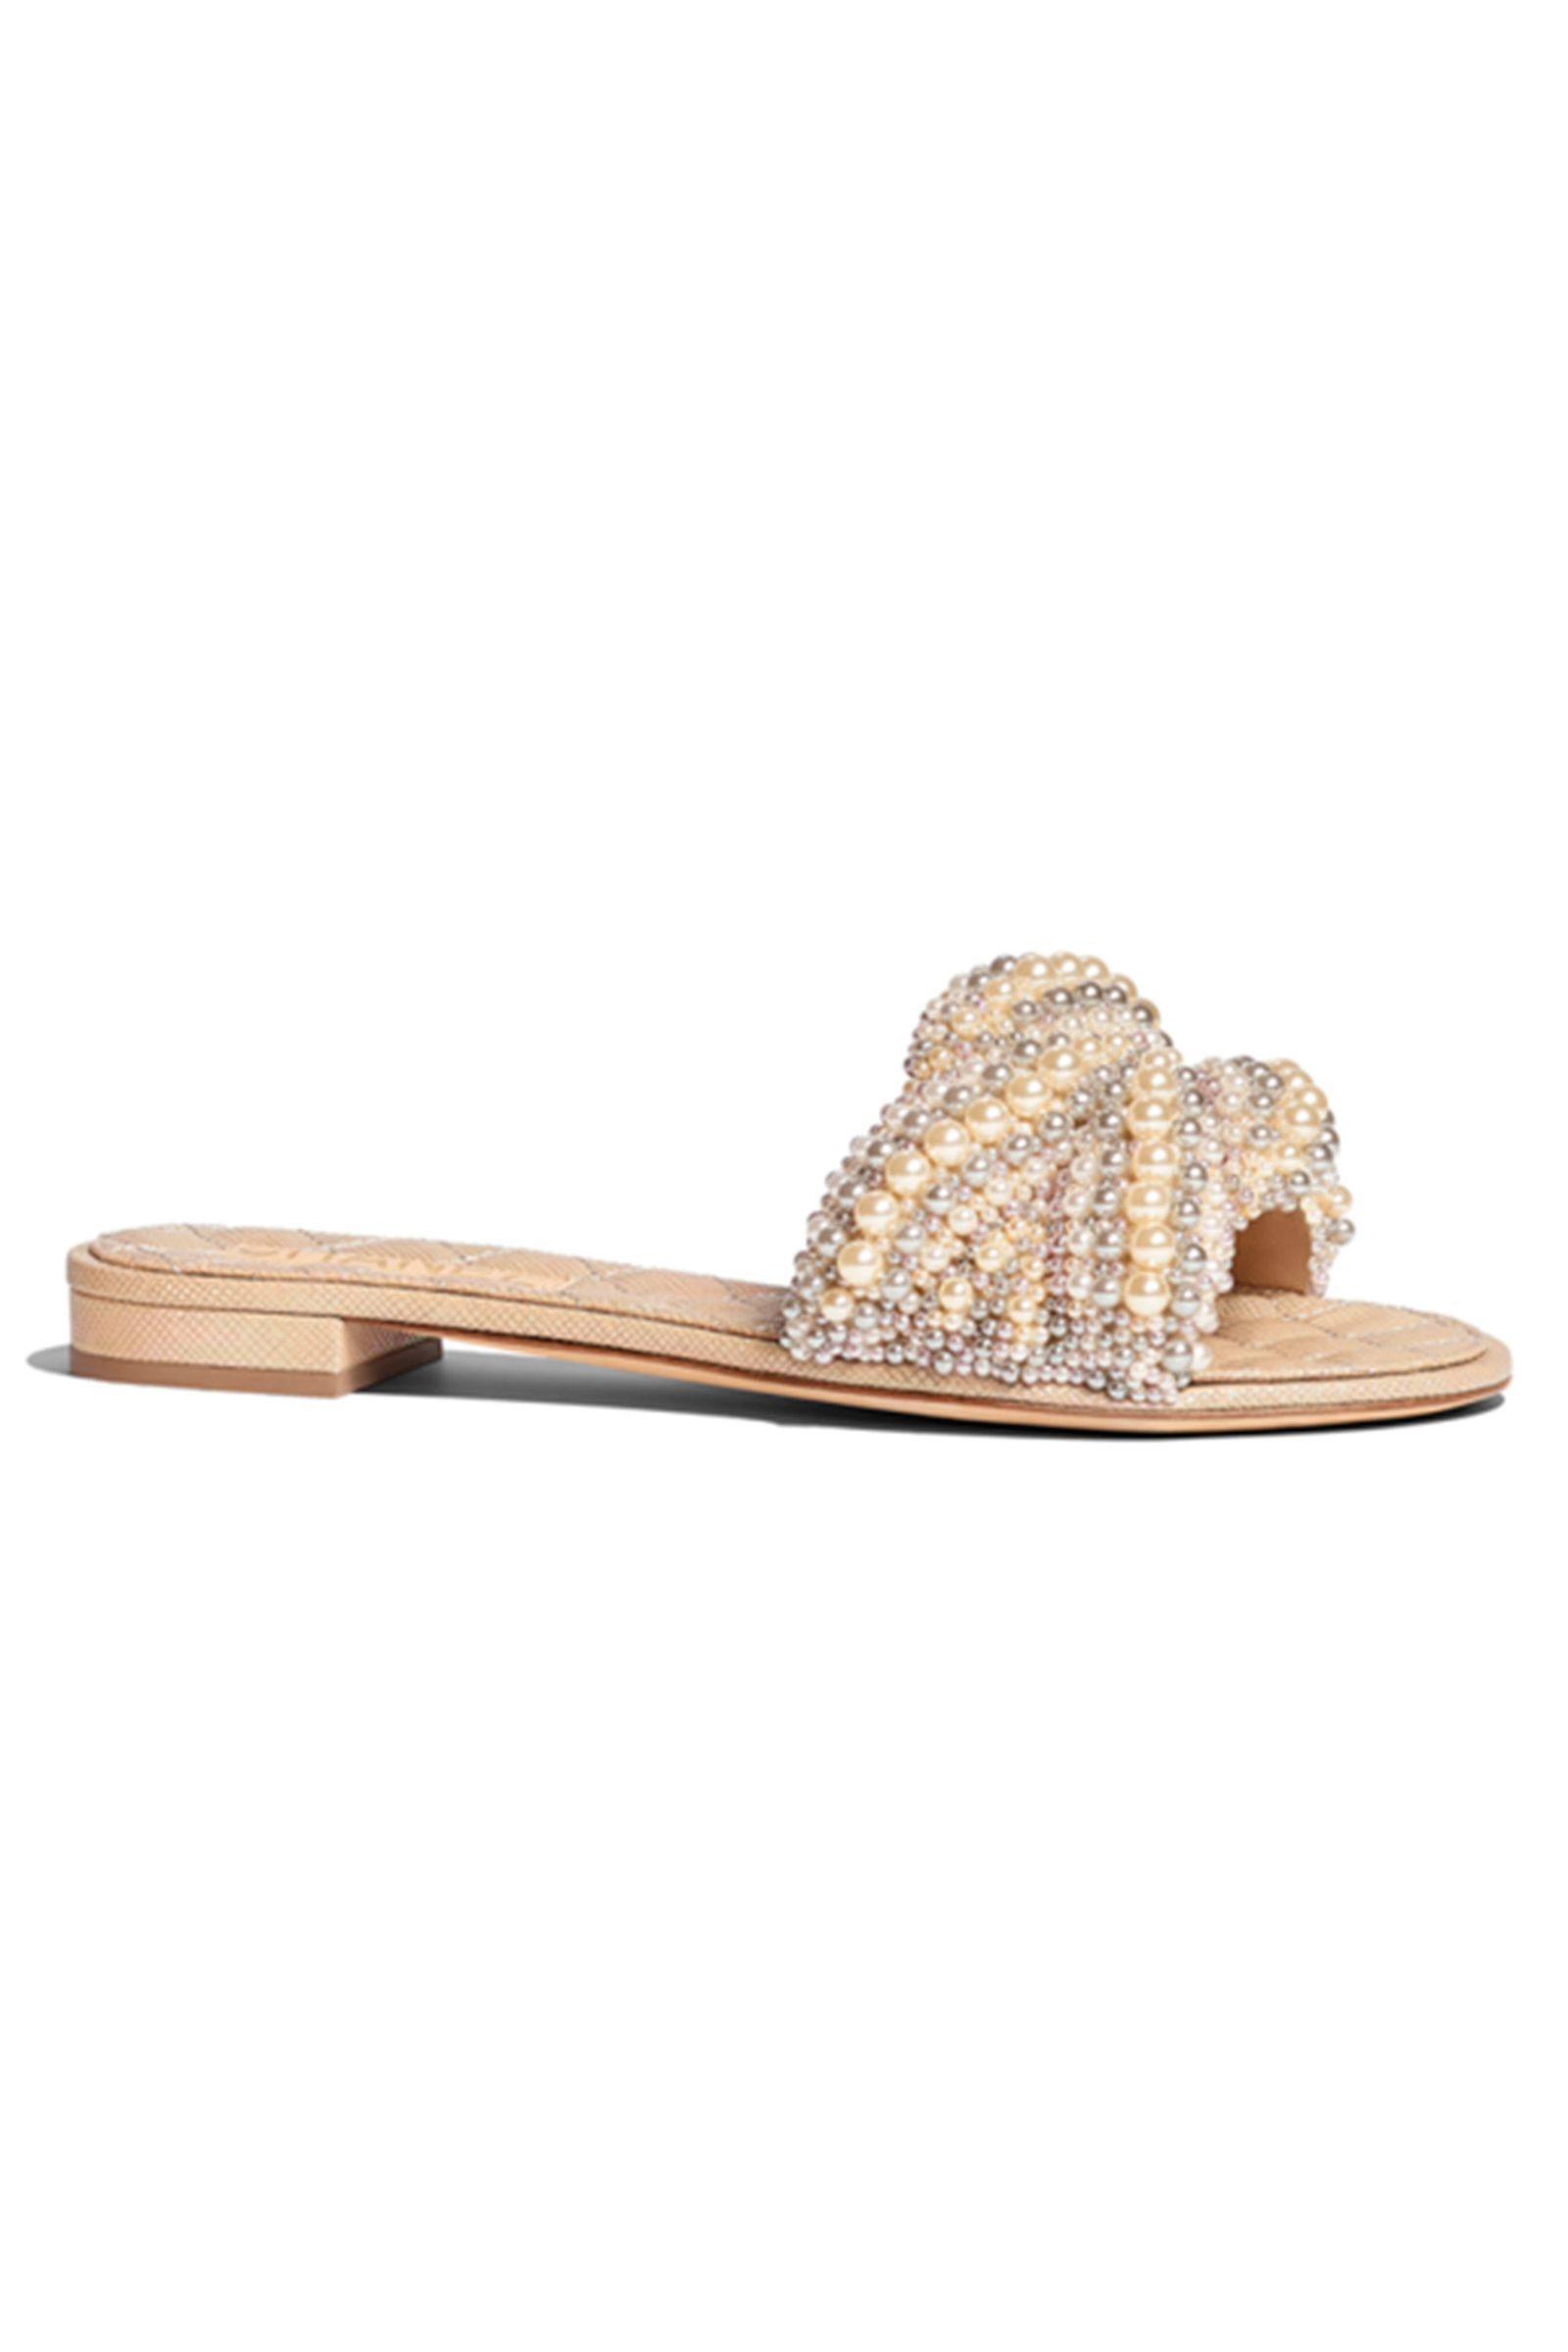 5eecd0b681a3 Summer sandals  Our definitive guide to this season s footwear ...